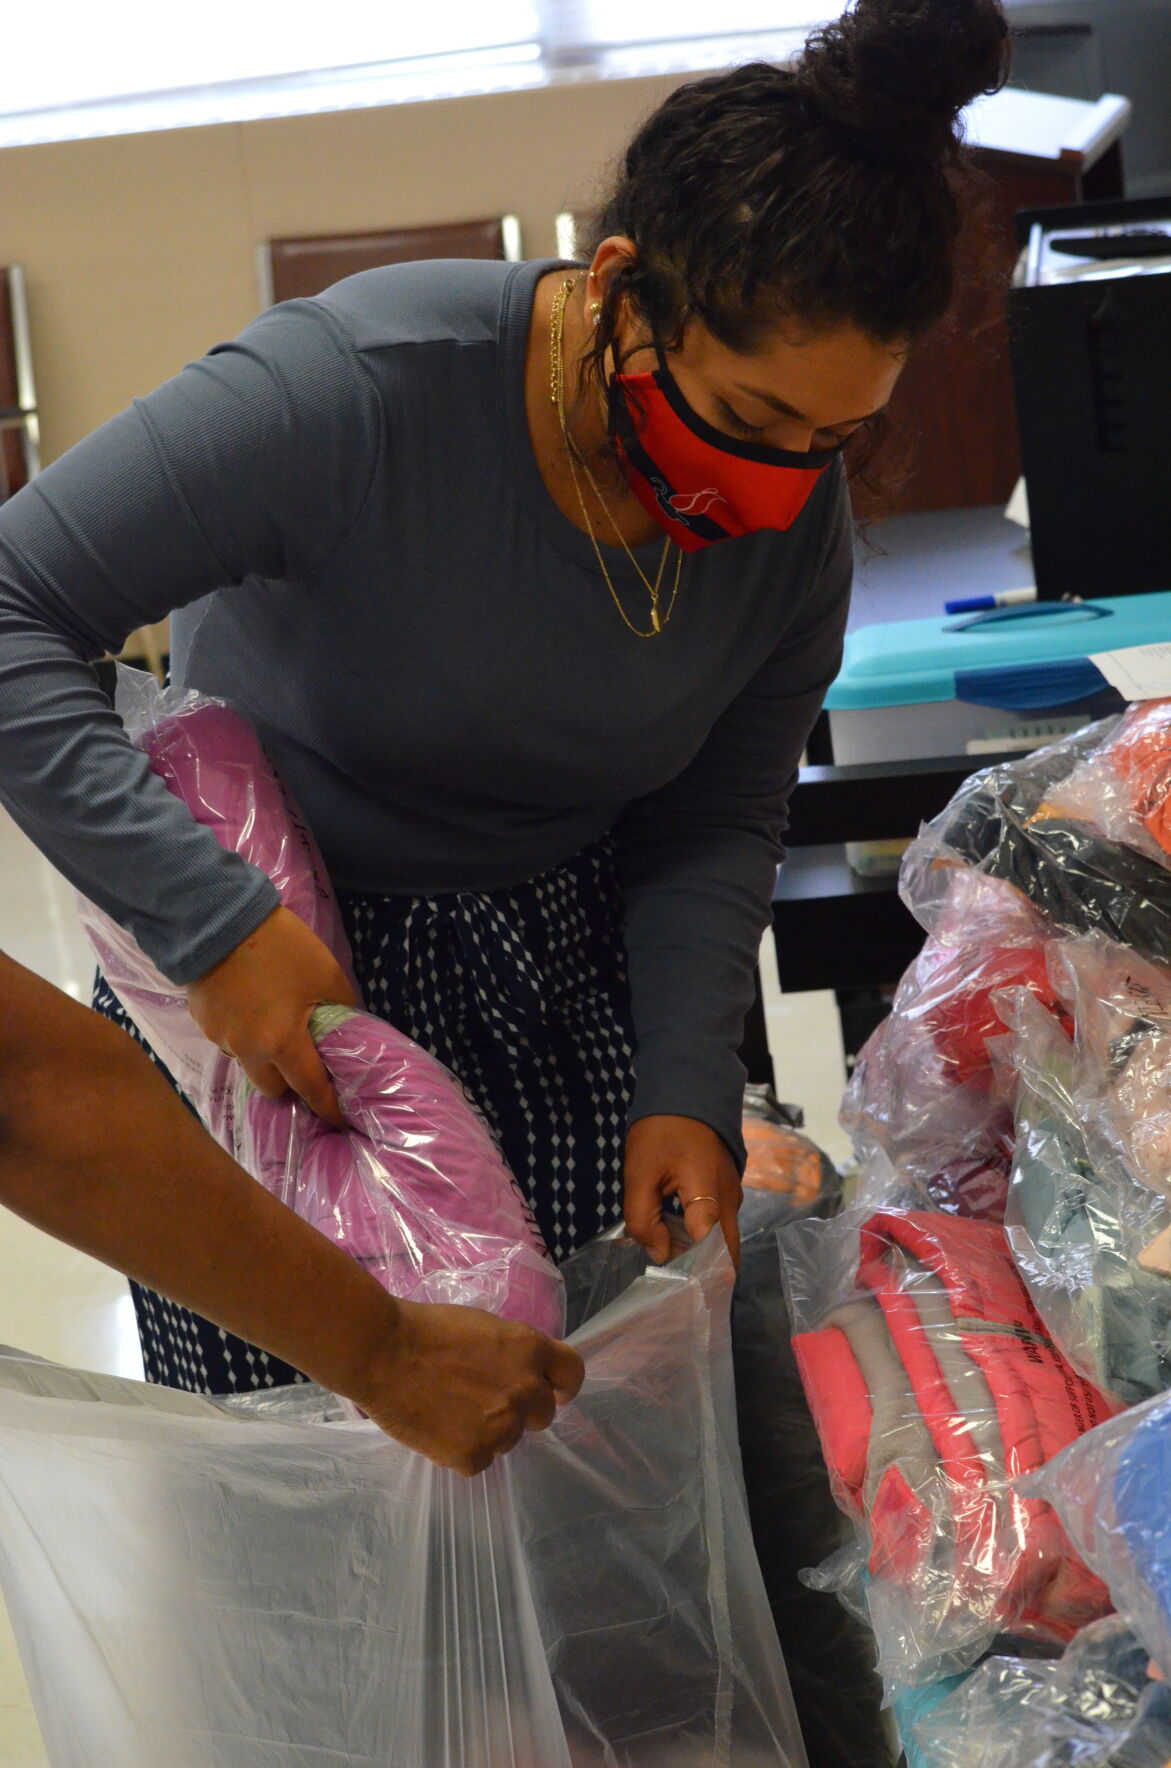 Paola Candelaria helps pack coats to be delievered to students in need at Iredell-Statesville Schools at the Allen D. Rutherford Education Center on Thursday.